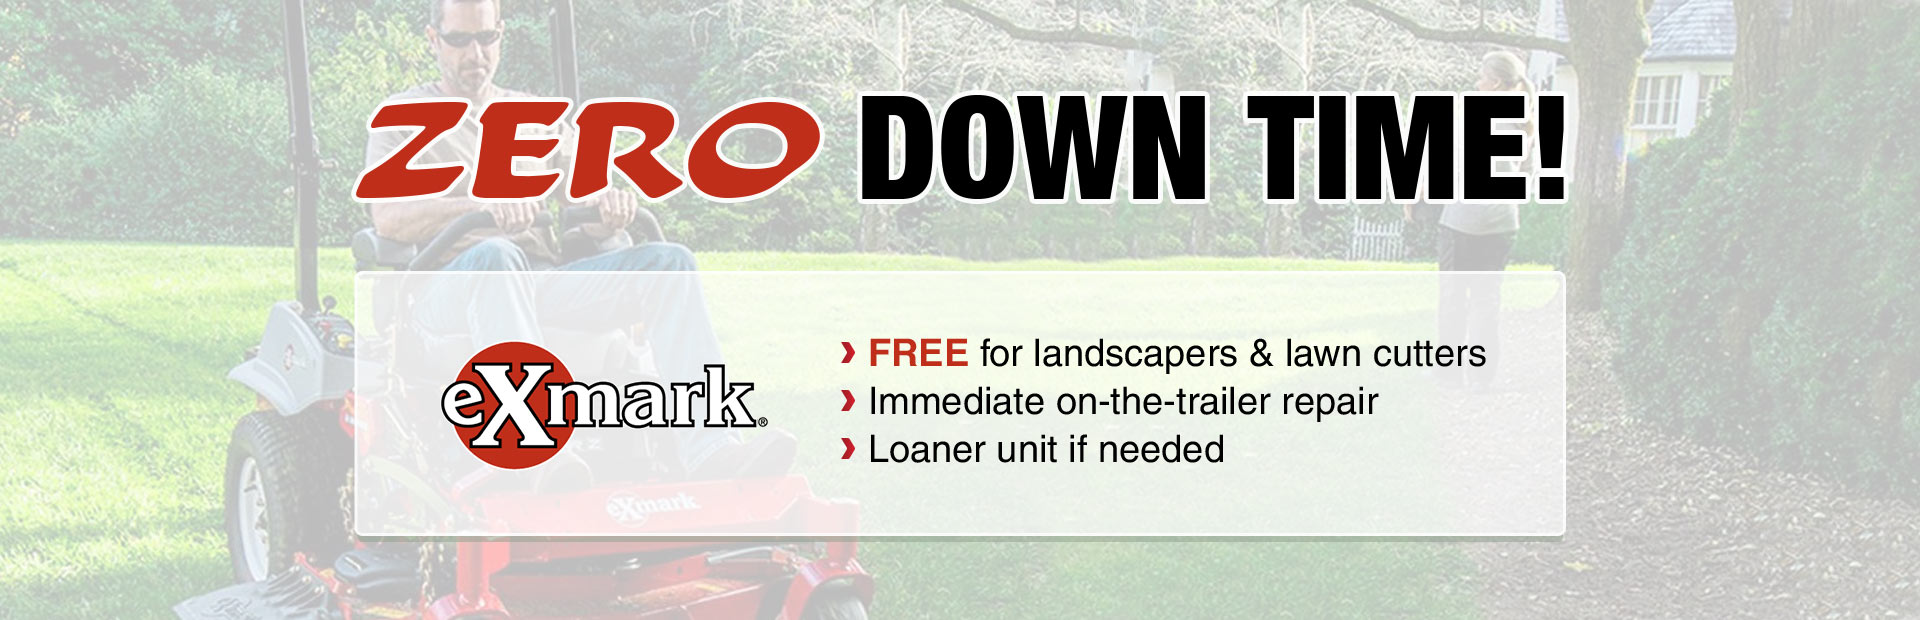 Zero Down Time: Call (615) 667-1647 for full details.